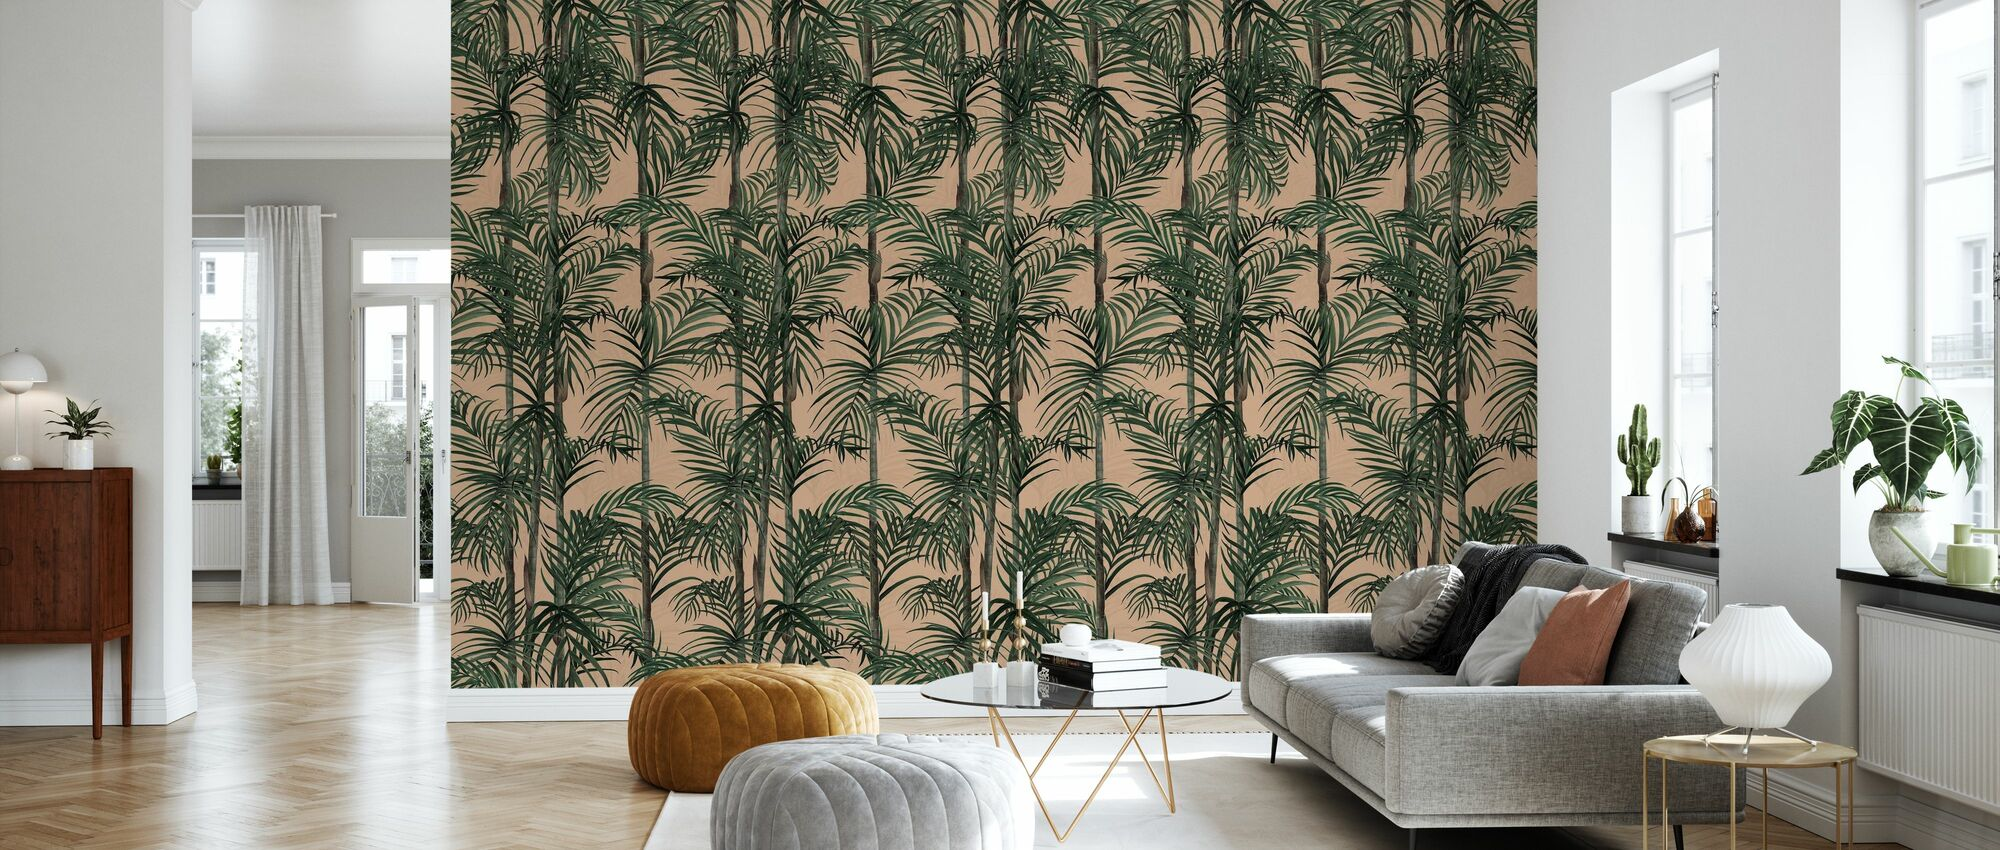 Botany Bamboo - Afternoon Blush - Wallpaper - Living Room